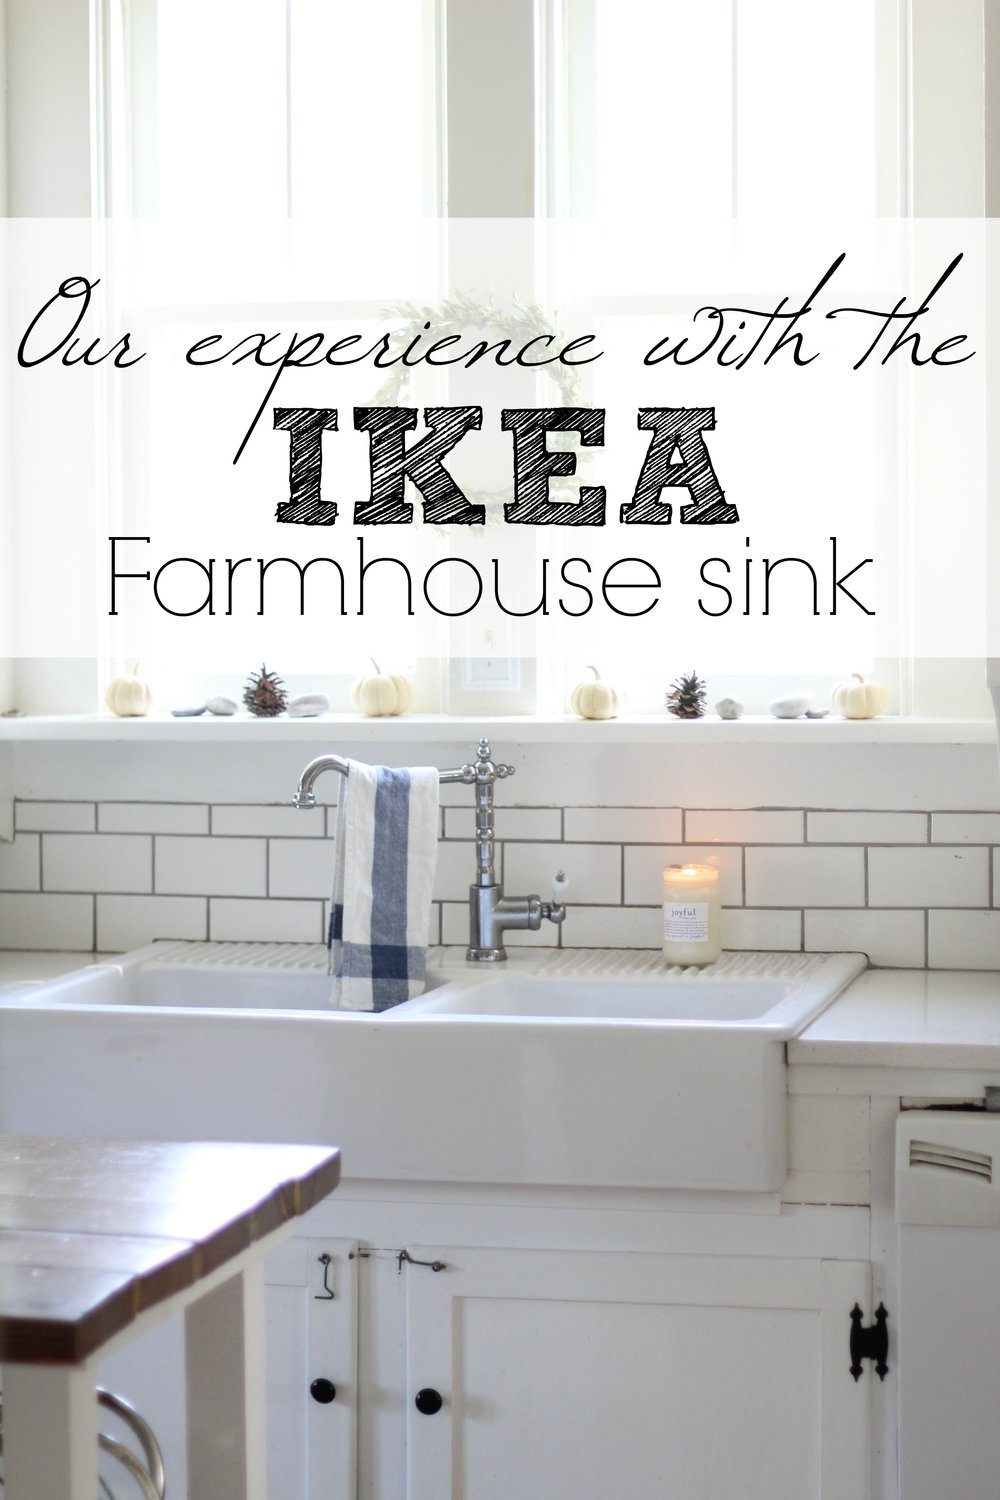 our experience with the ikea farmhouse sink.jpg